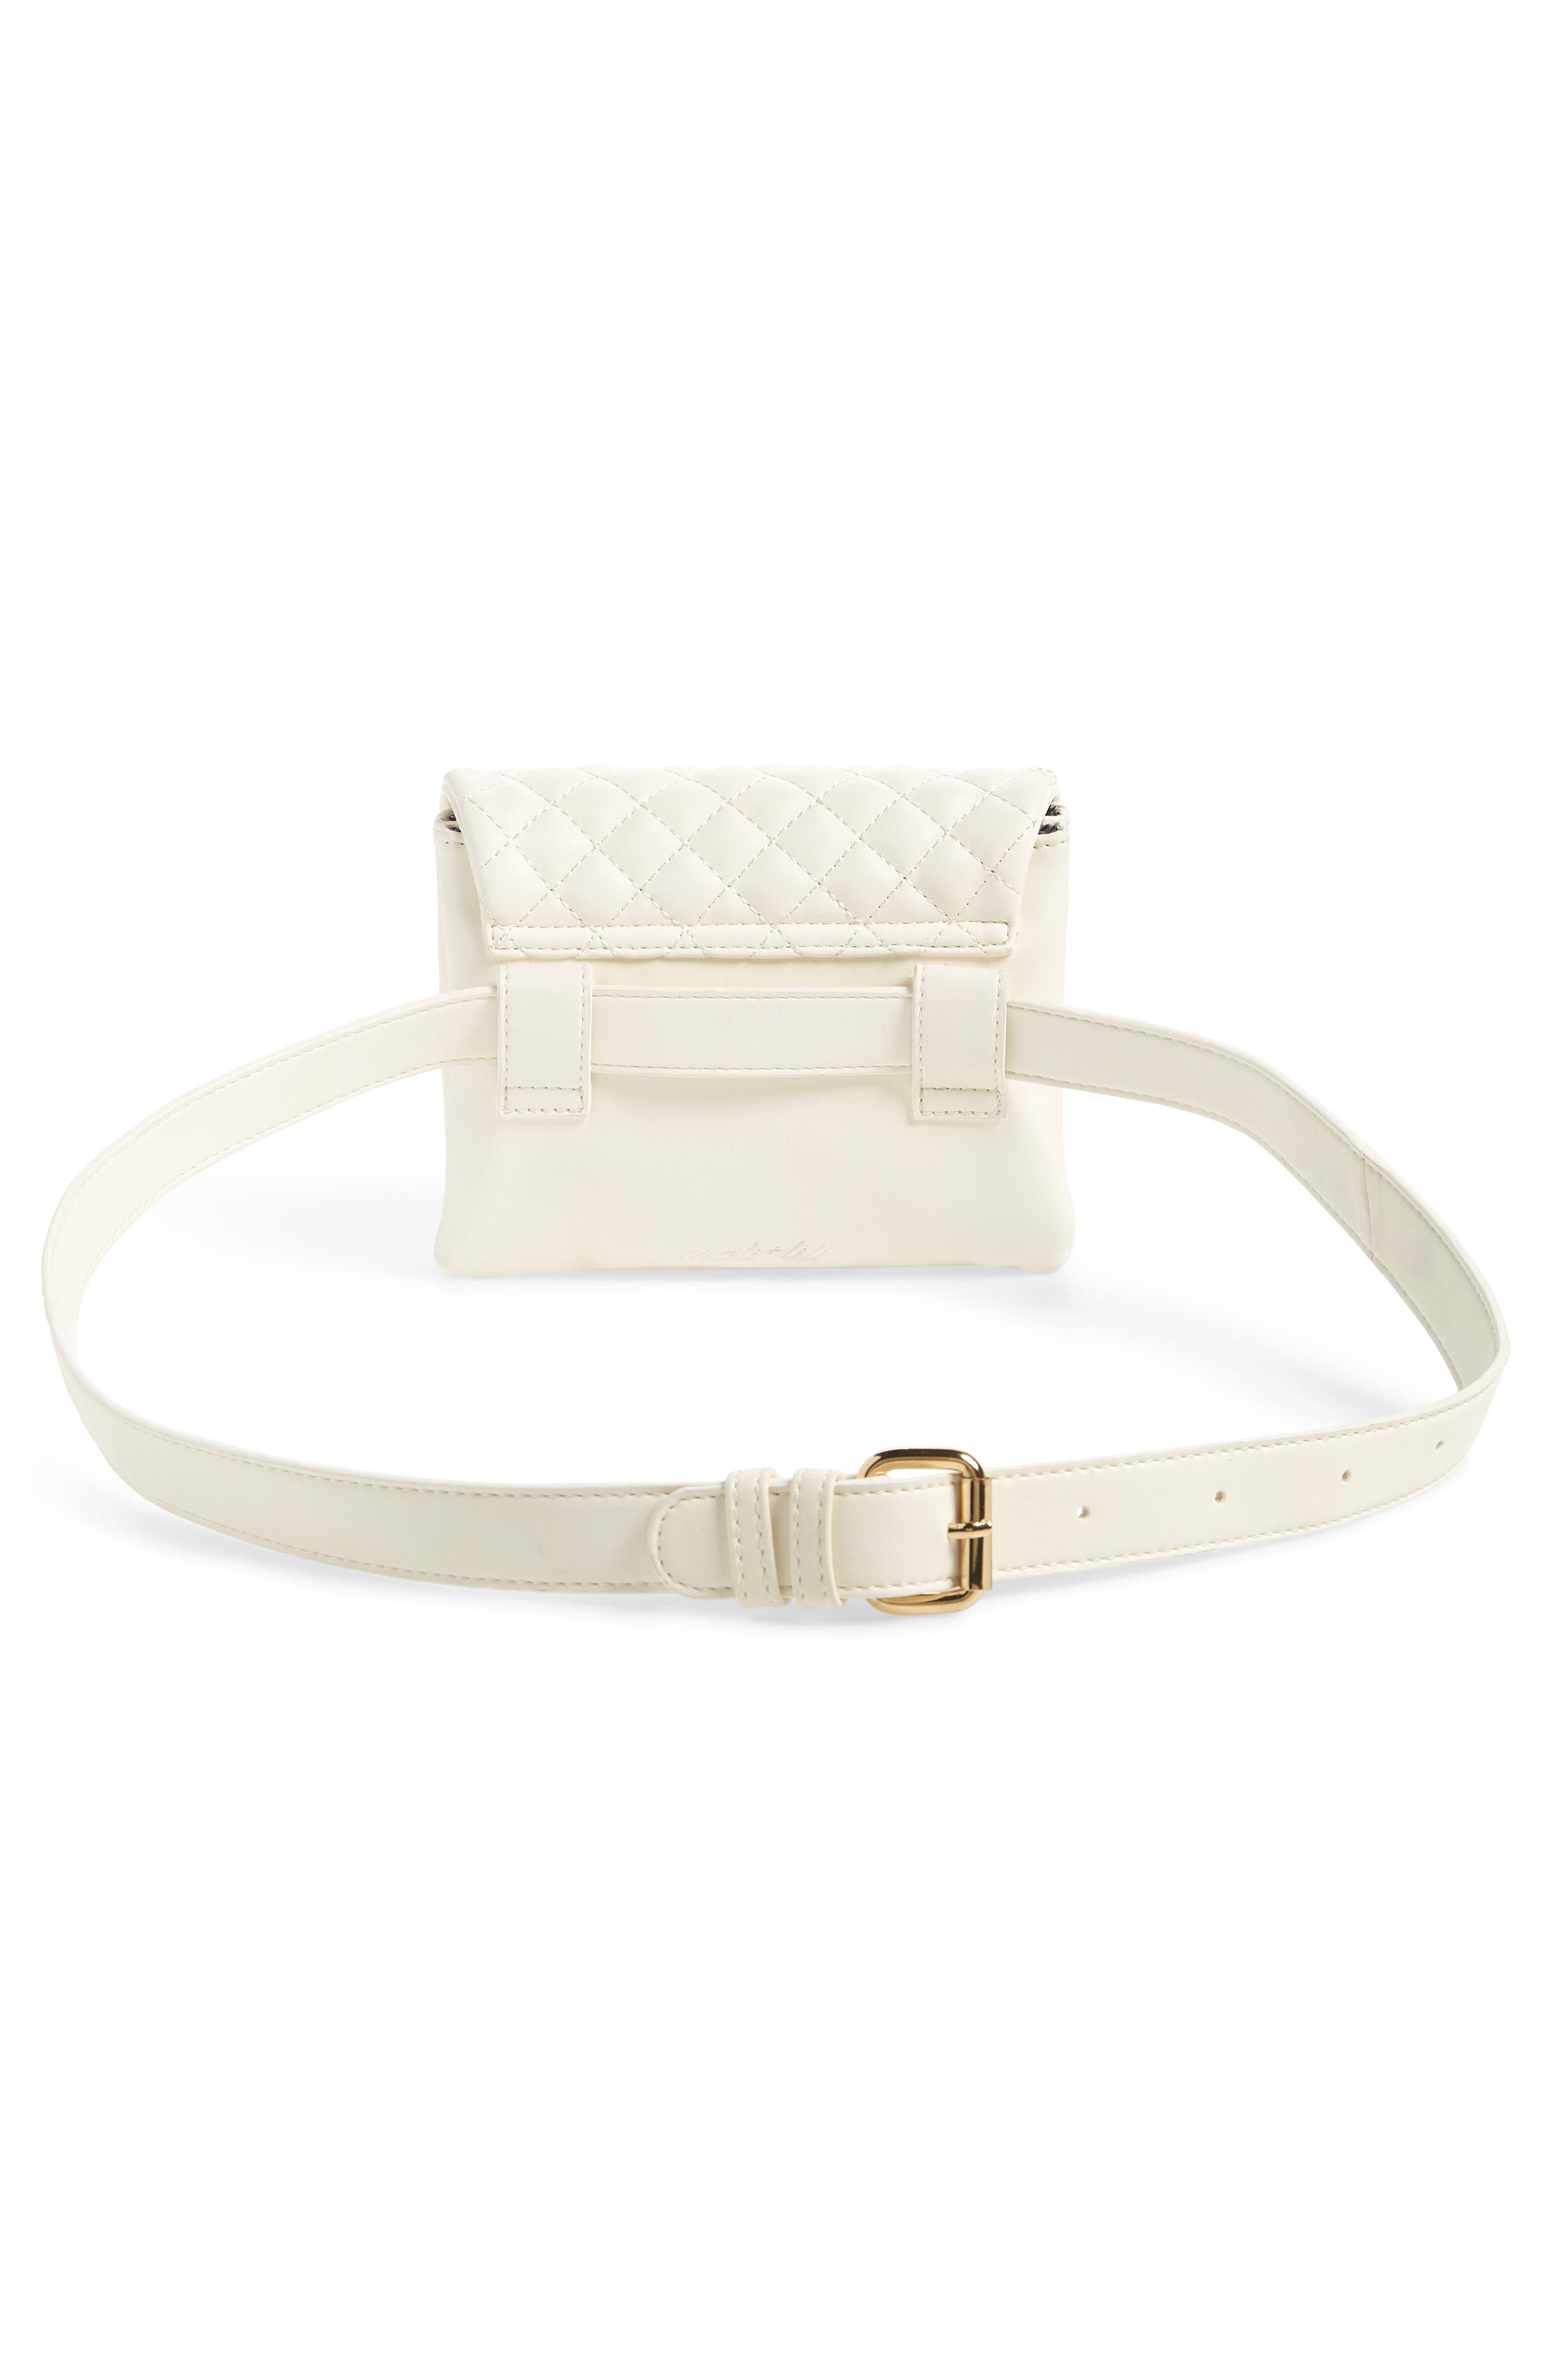 Mali + Lili Quilted Vegan Leather Convertible Belt Bag,                             Alternate thumbnail 5, color,                             WHITE